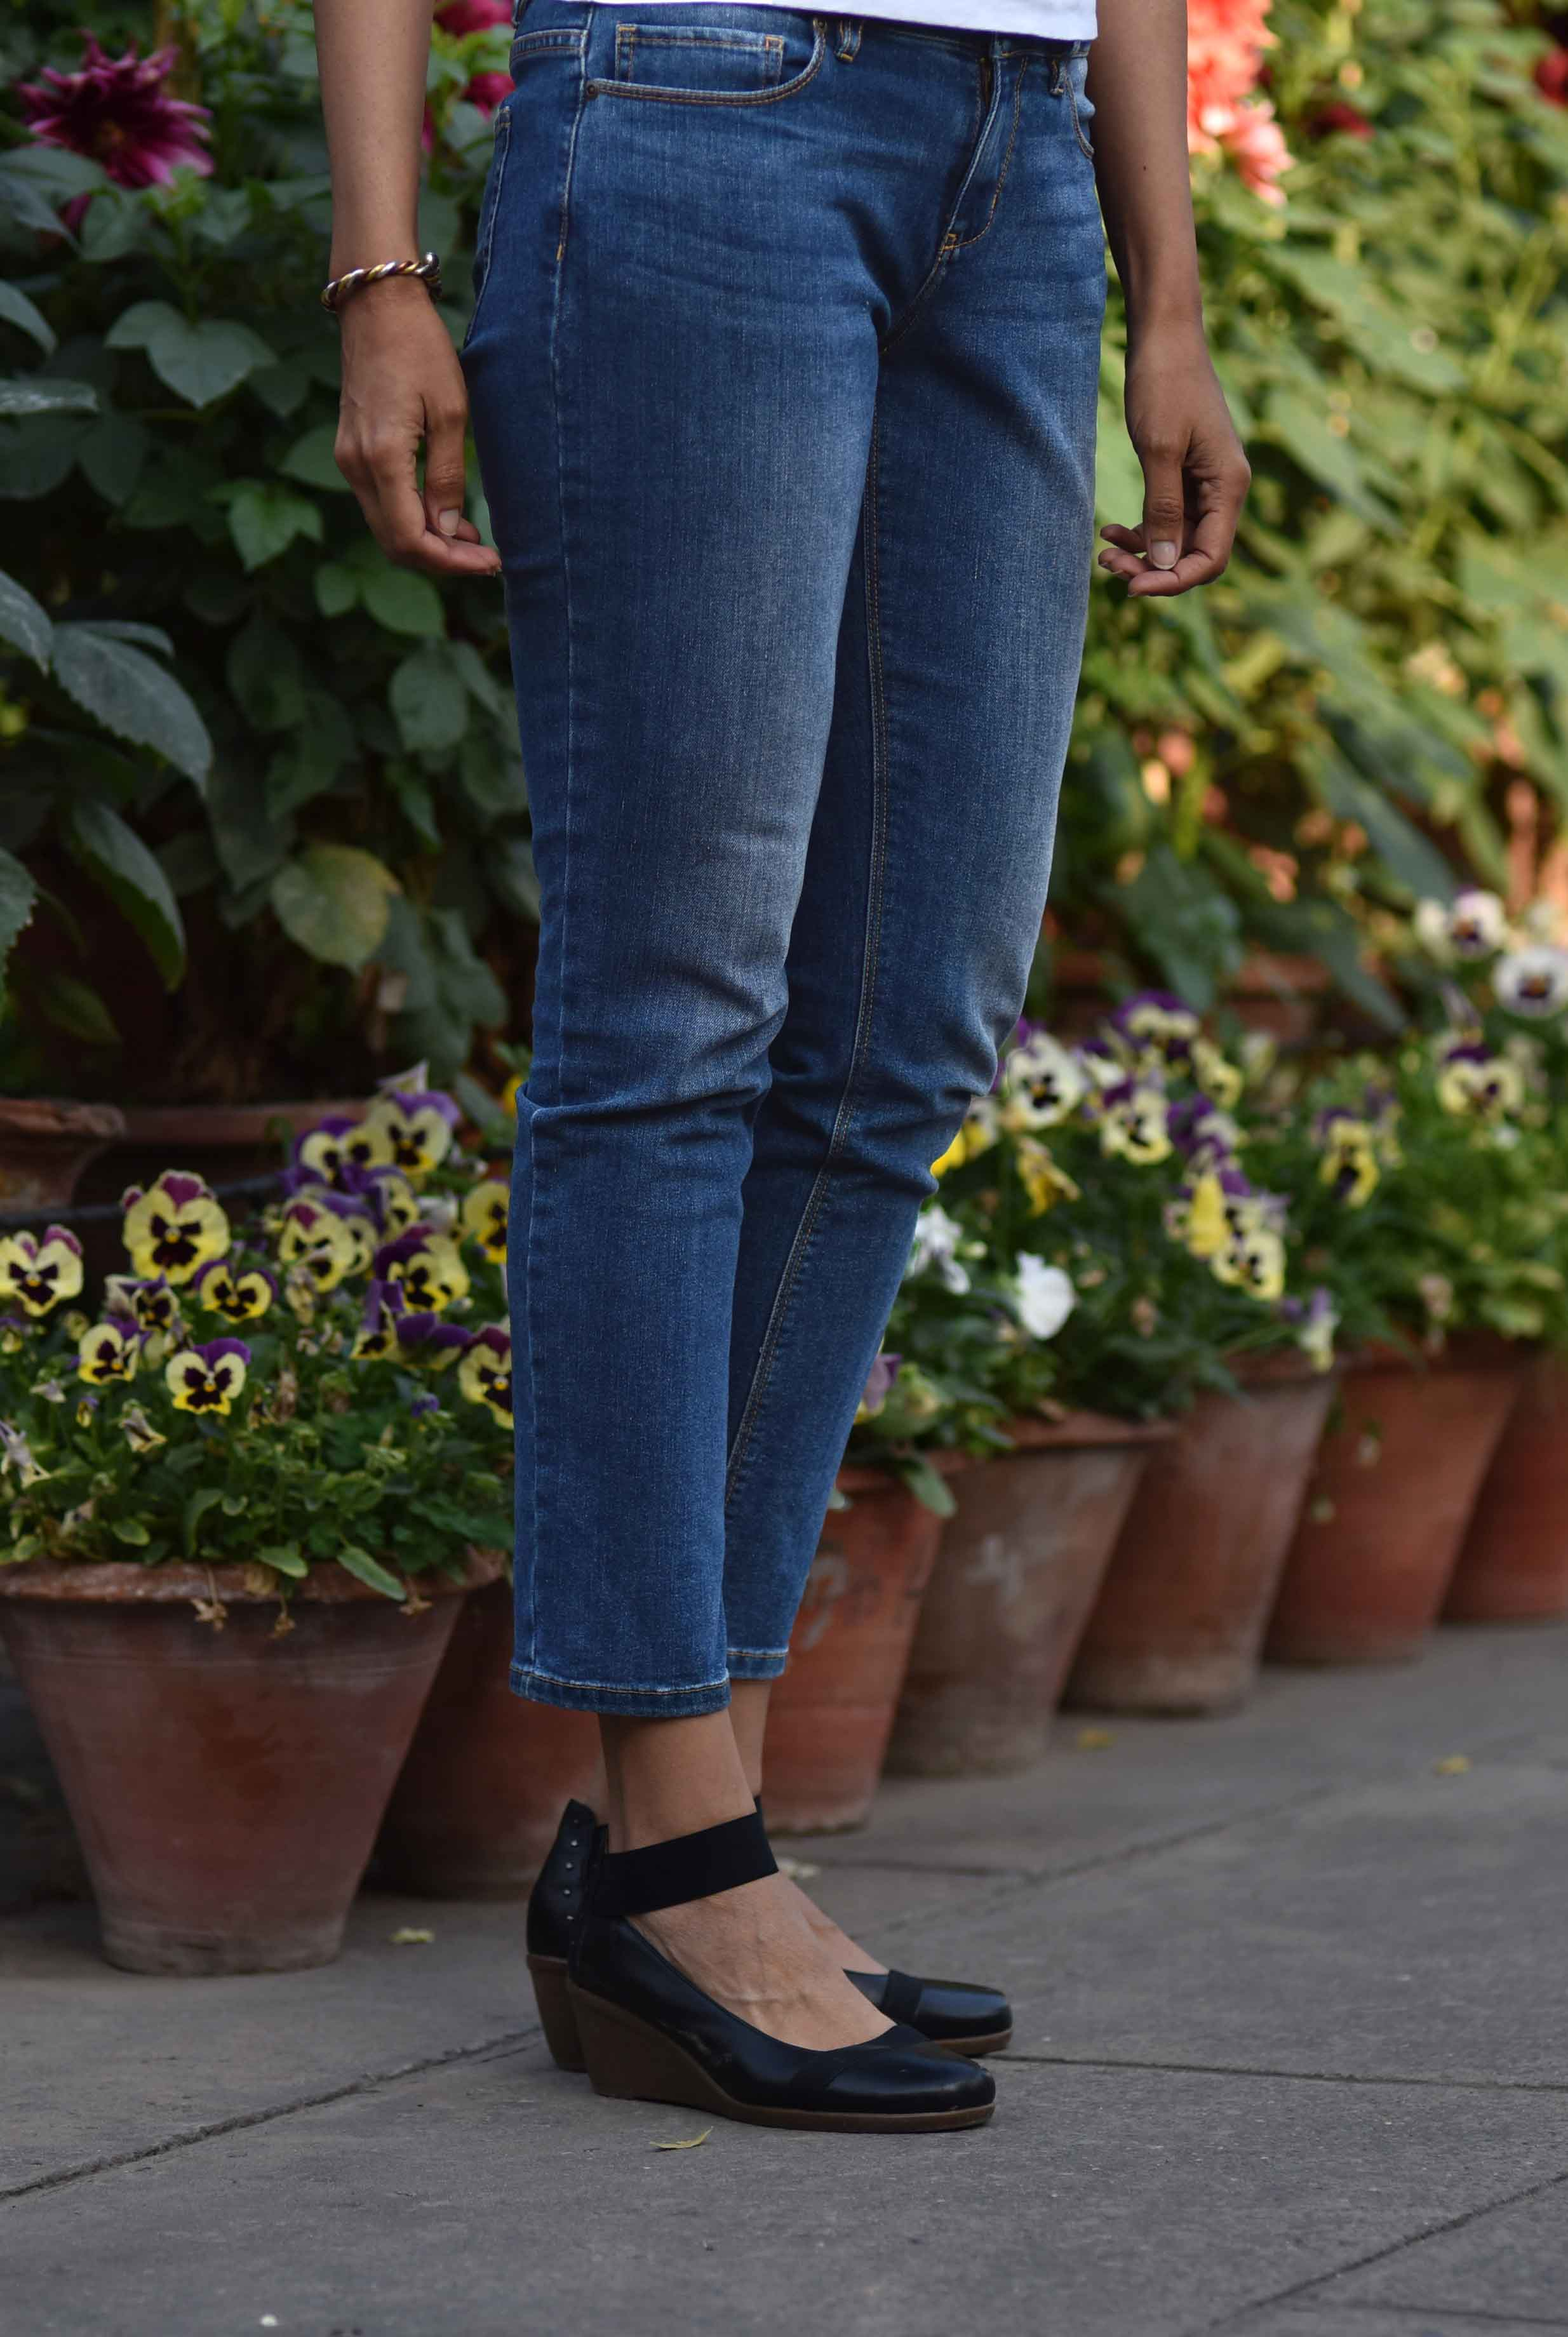 The JJill Authentic Fit Slim Ankle Jeans are great for outings! Image©gunjanvirk